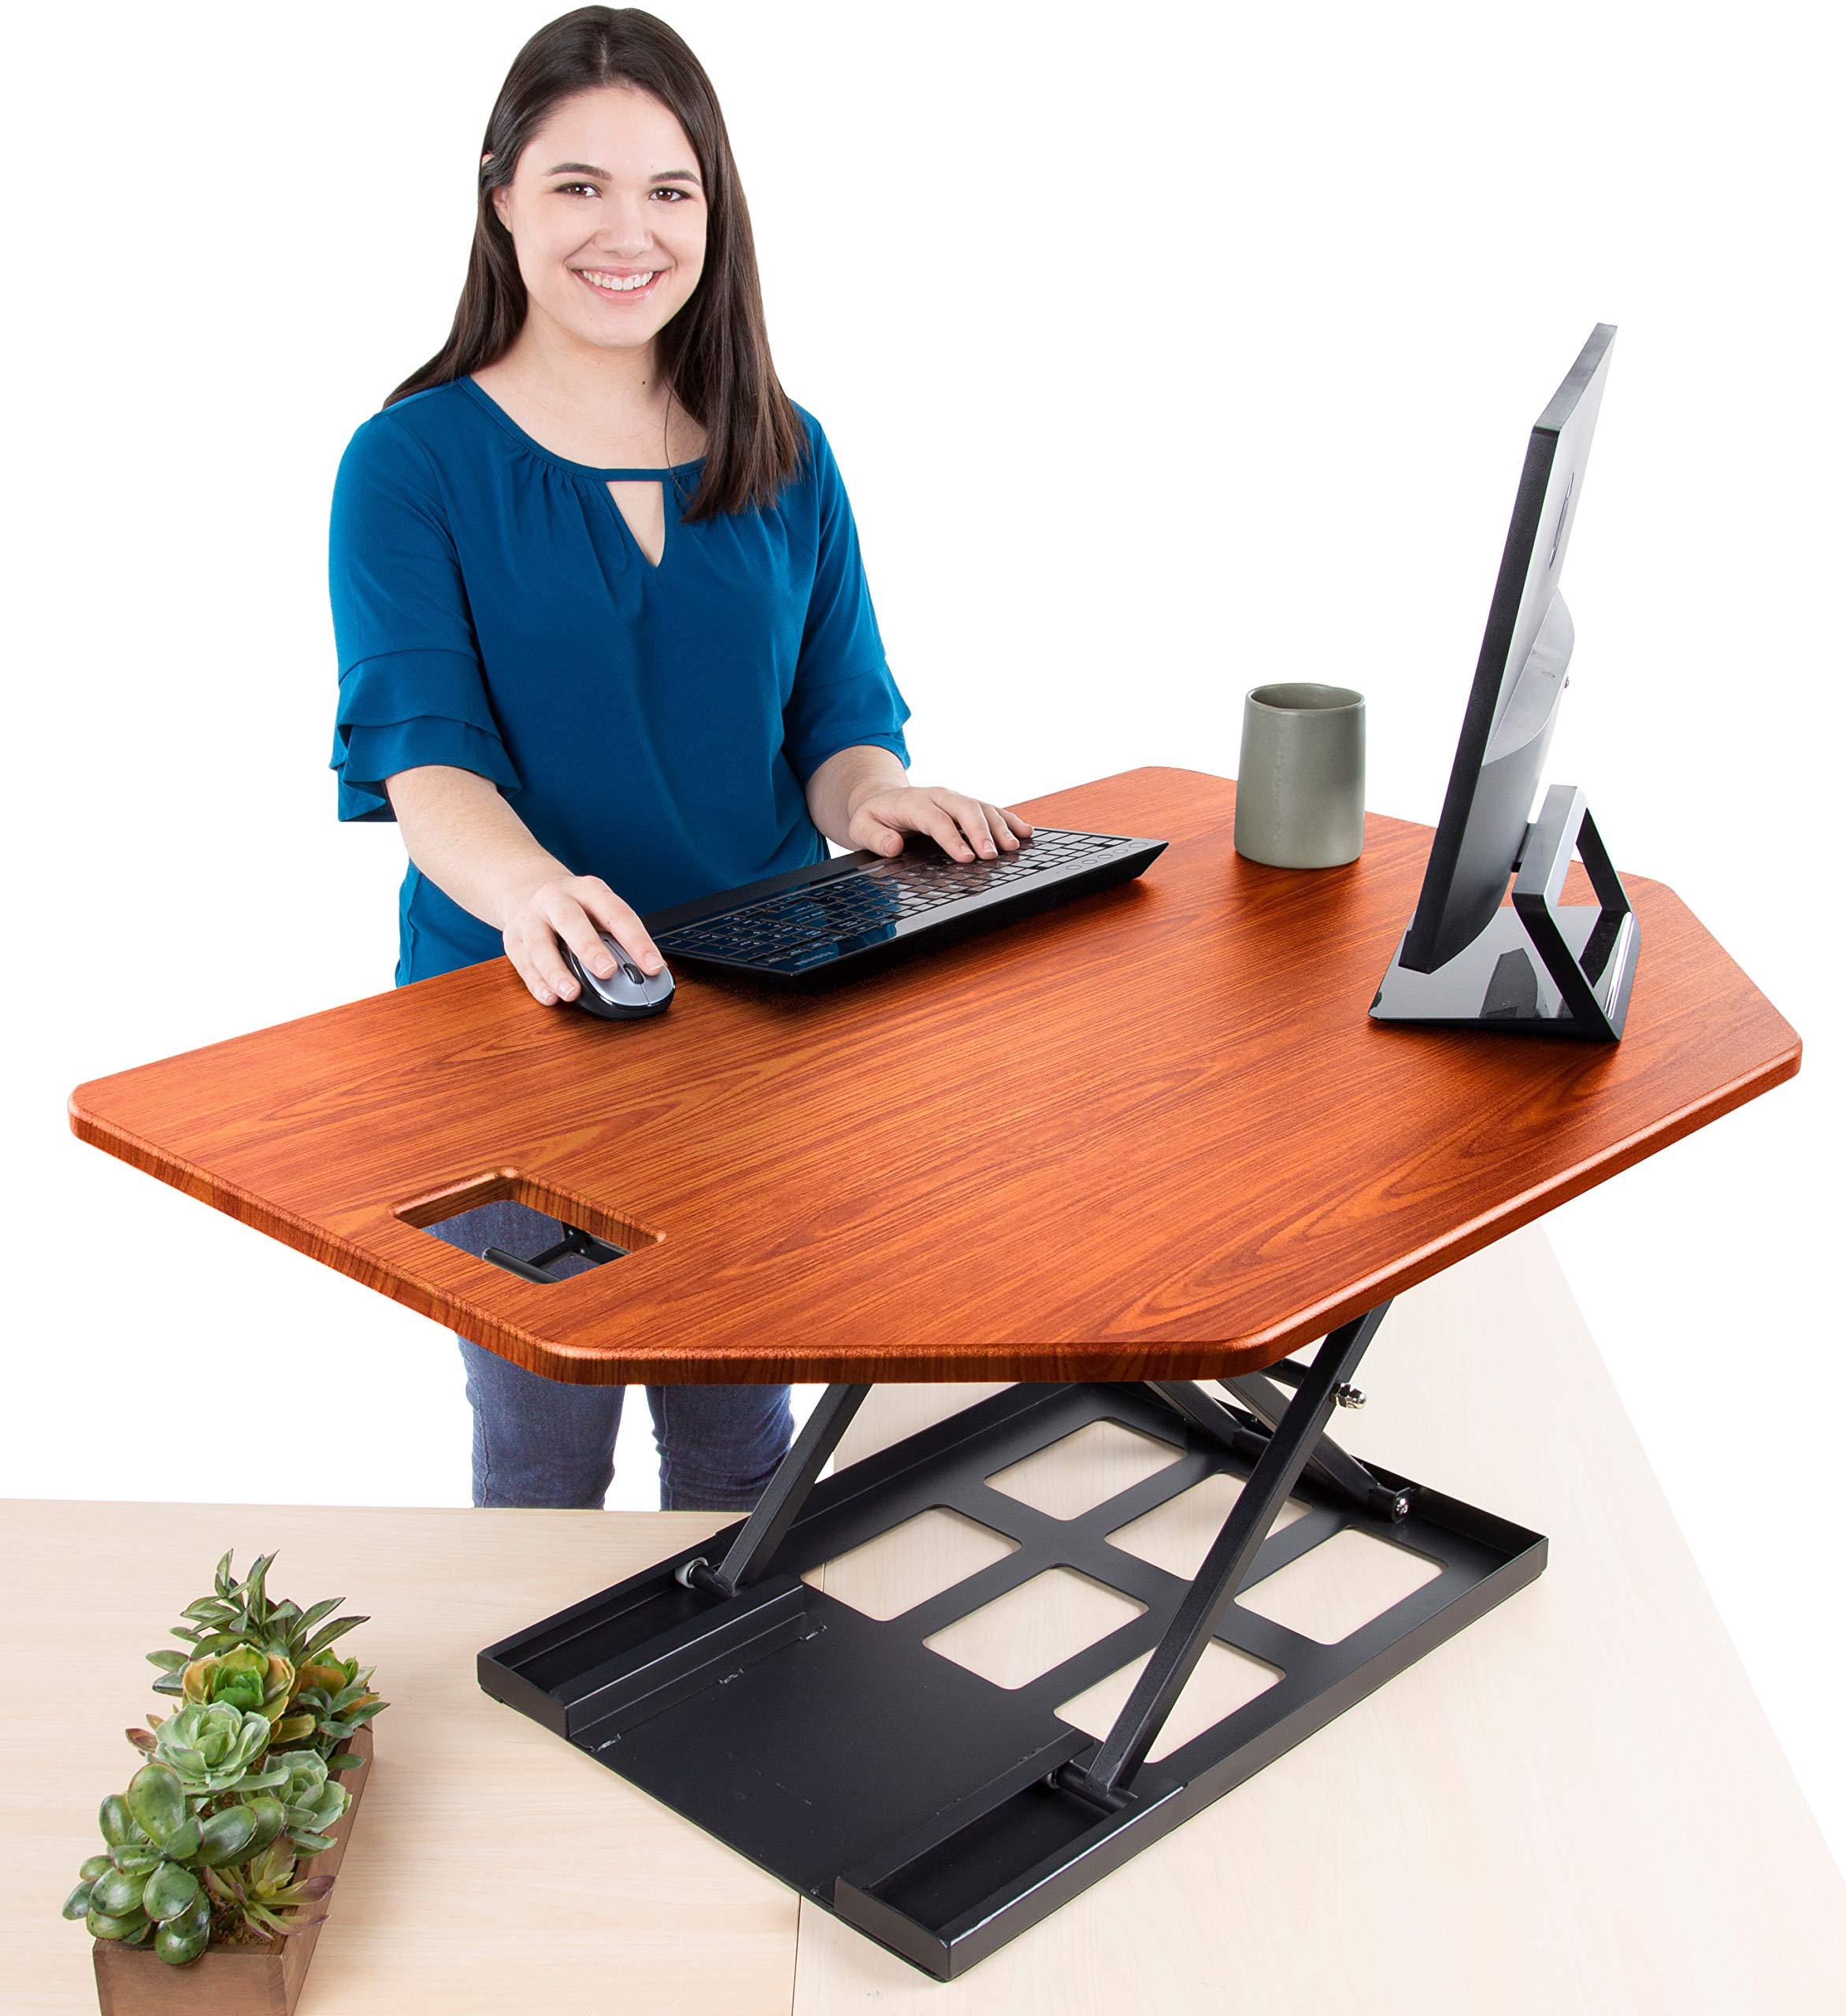 Best Standing Desk Converter To Help, Best Sit Stand Desk Converter For Tall Person